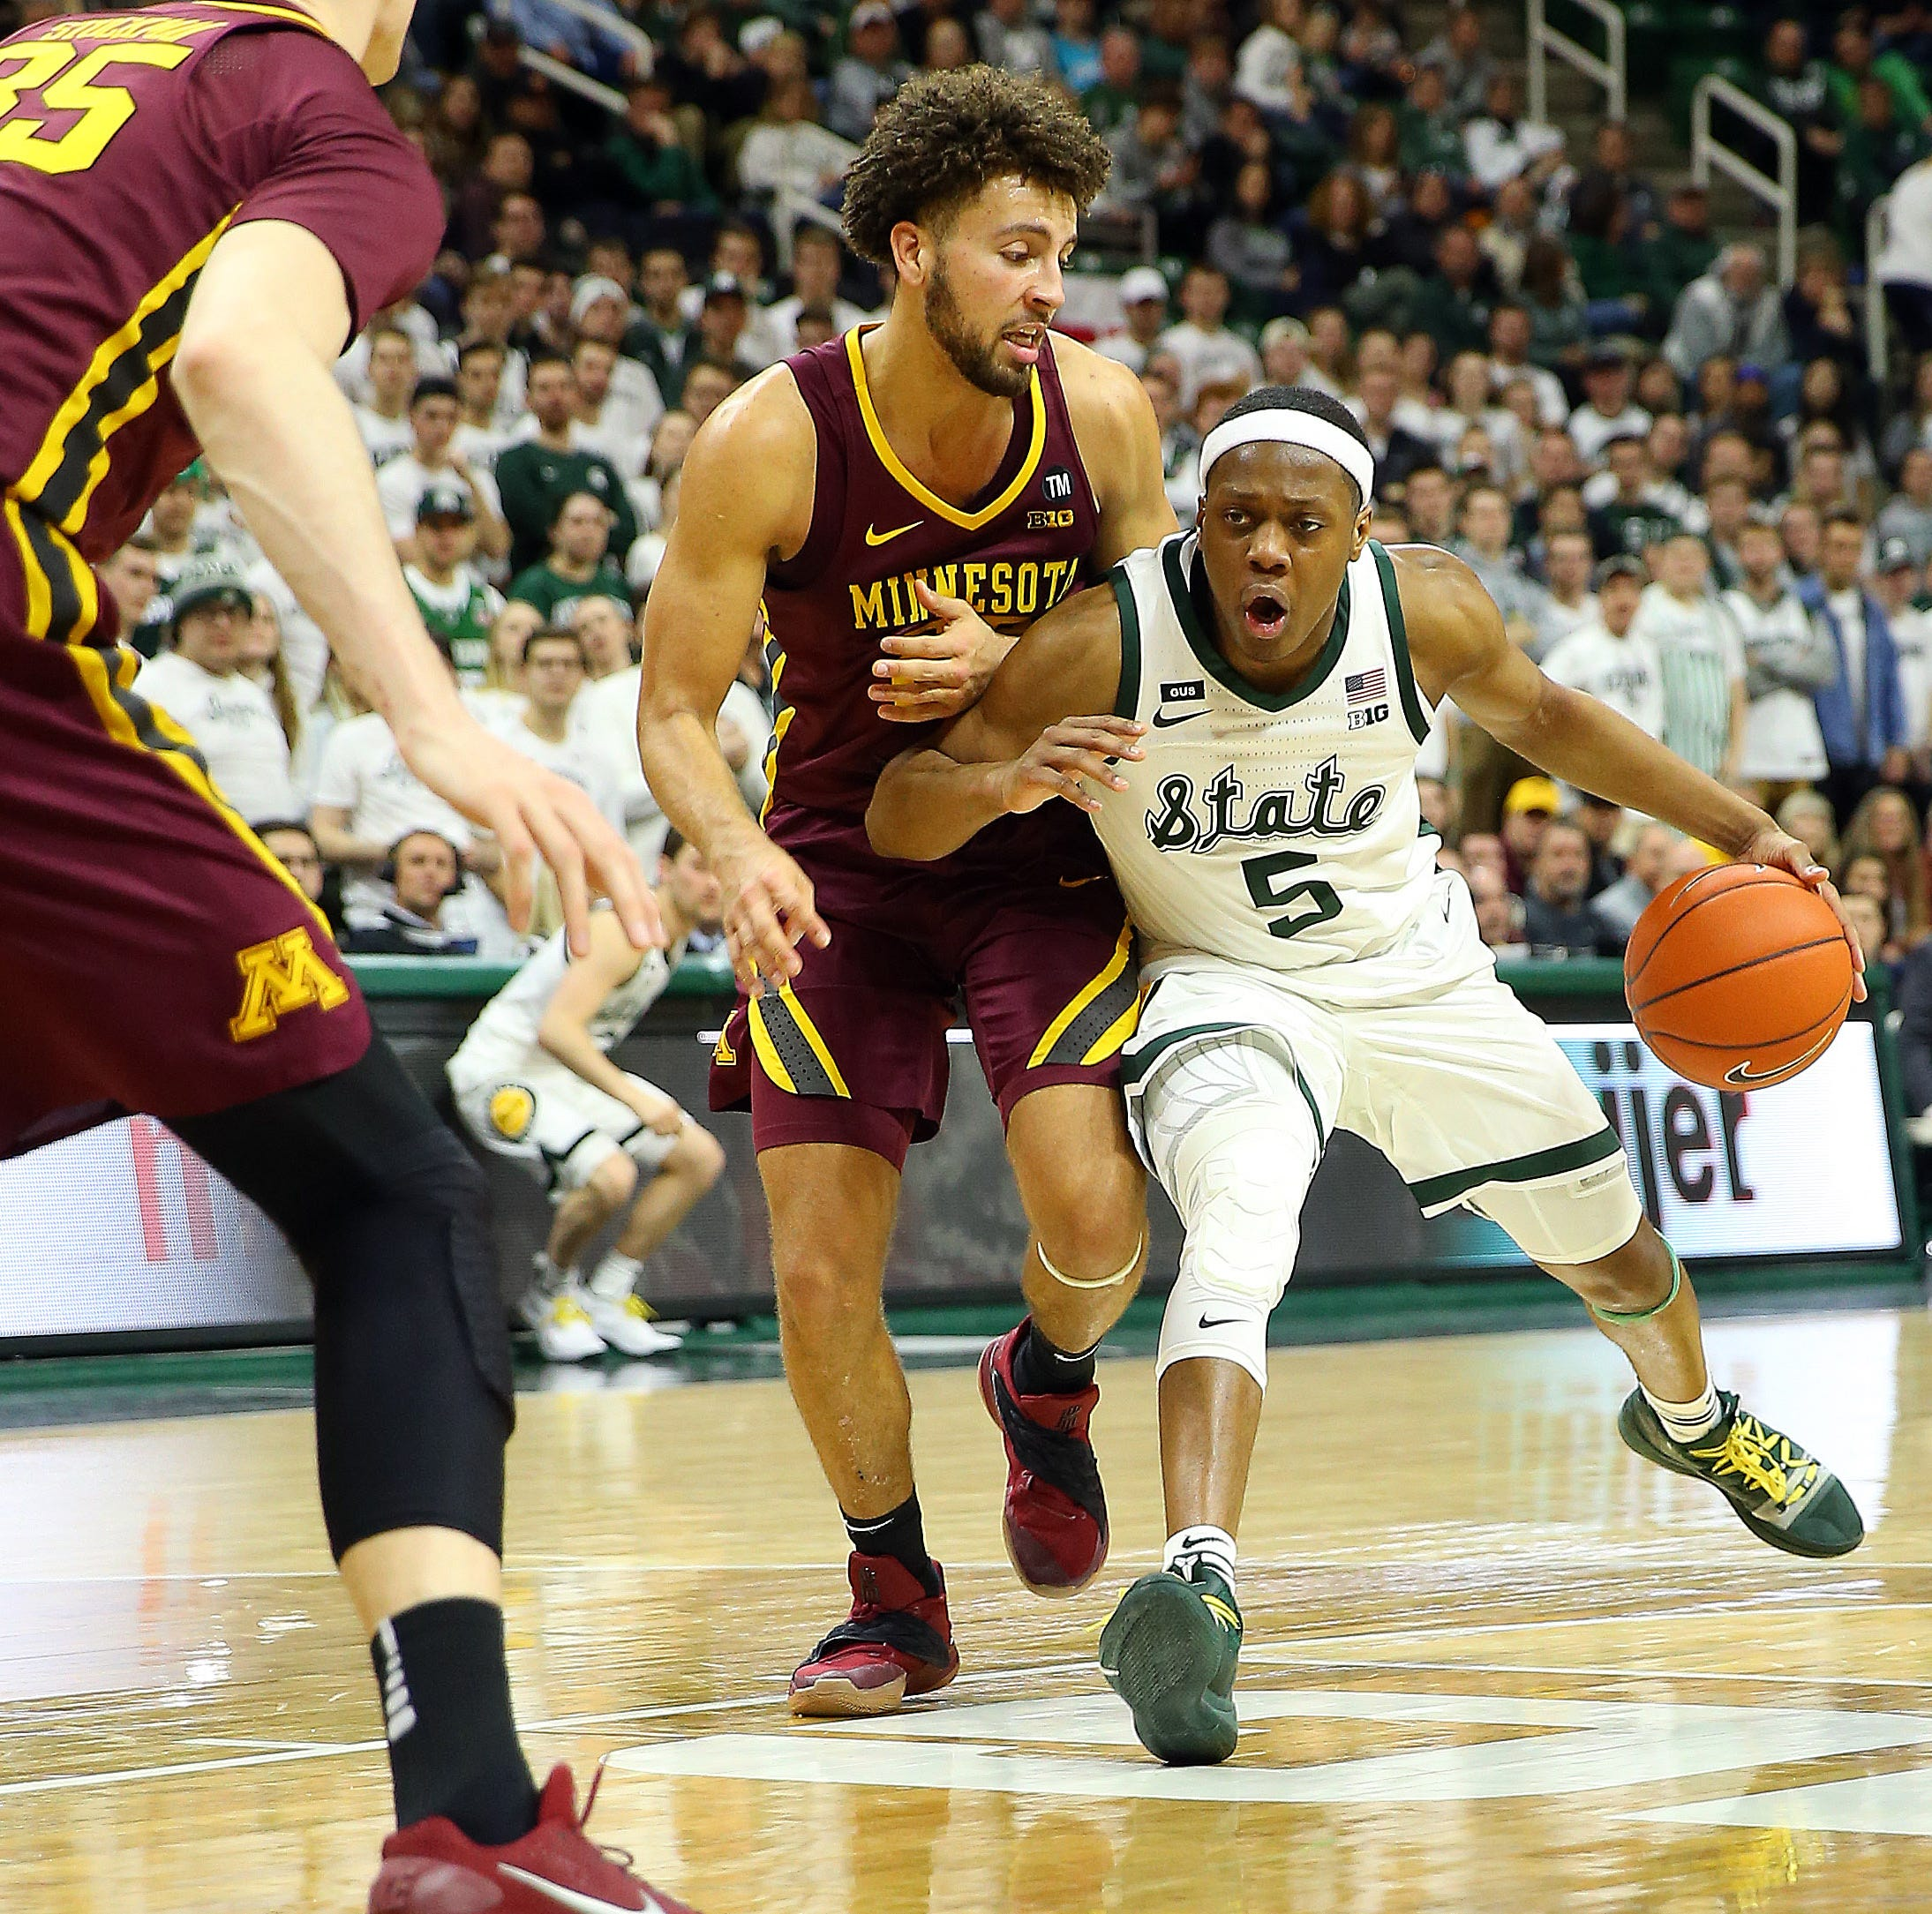 Scouting Minnesota: A first look at the familiar Gophers, Michigan State's next foe